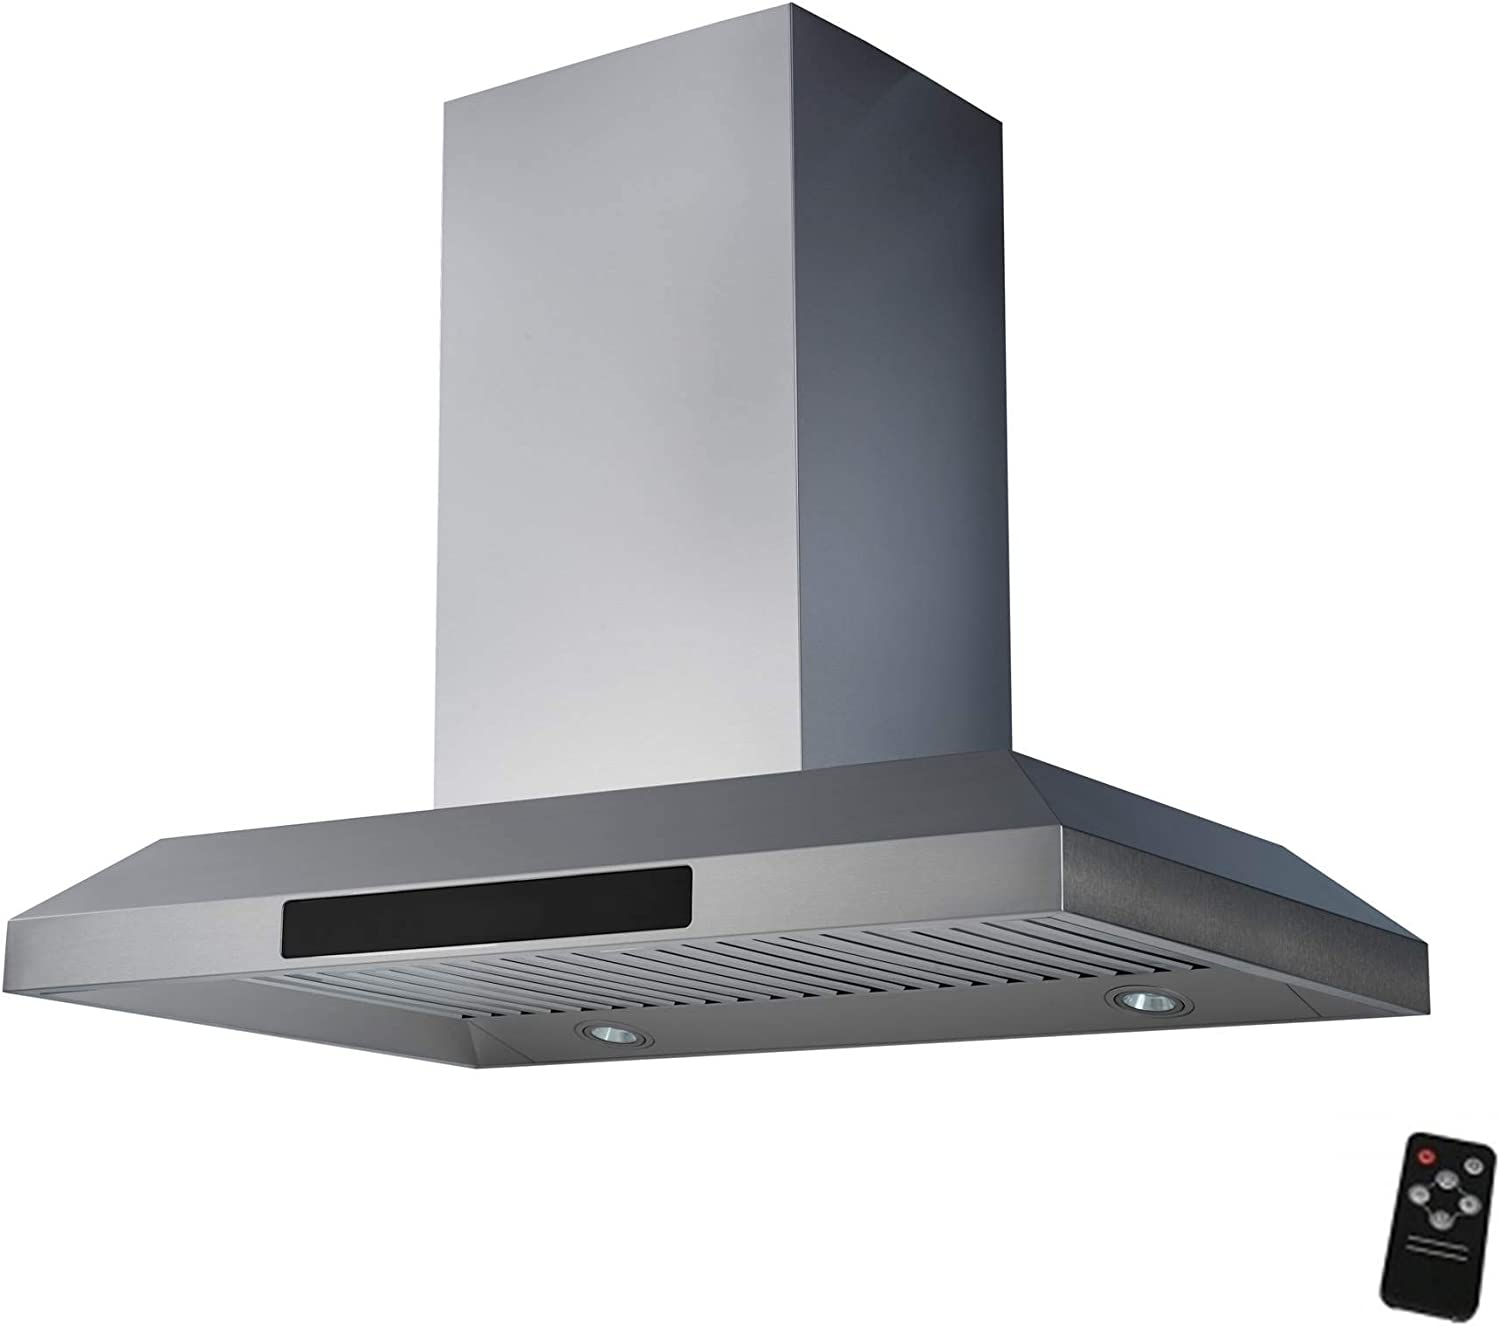 "Awoco 36"" Island Mount 43""H Stainless Steel Range Hood 4 Speeds, 6"" Round Top Vent 900CFM 4 LED Lights & Remote Control (RH-WQ-36)"